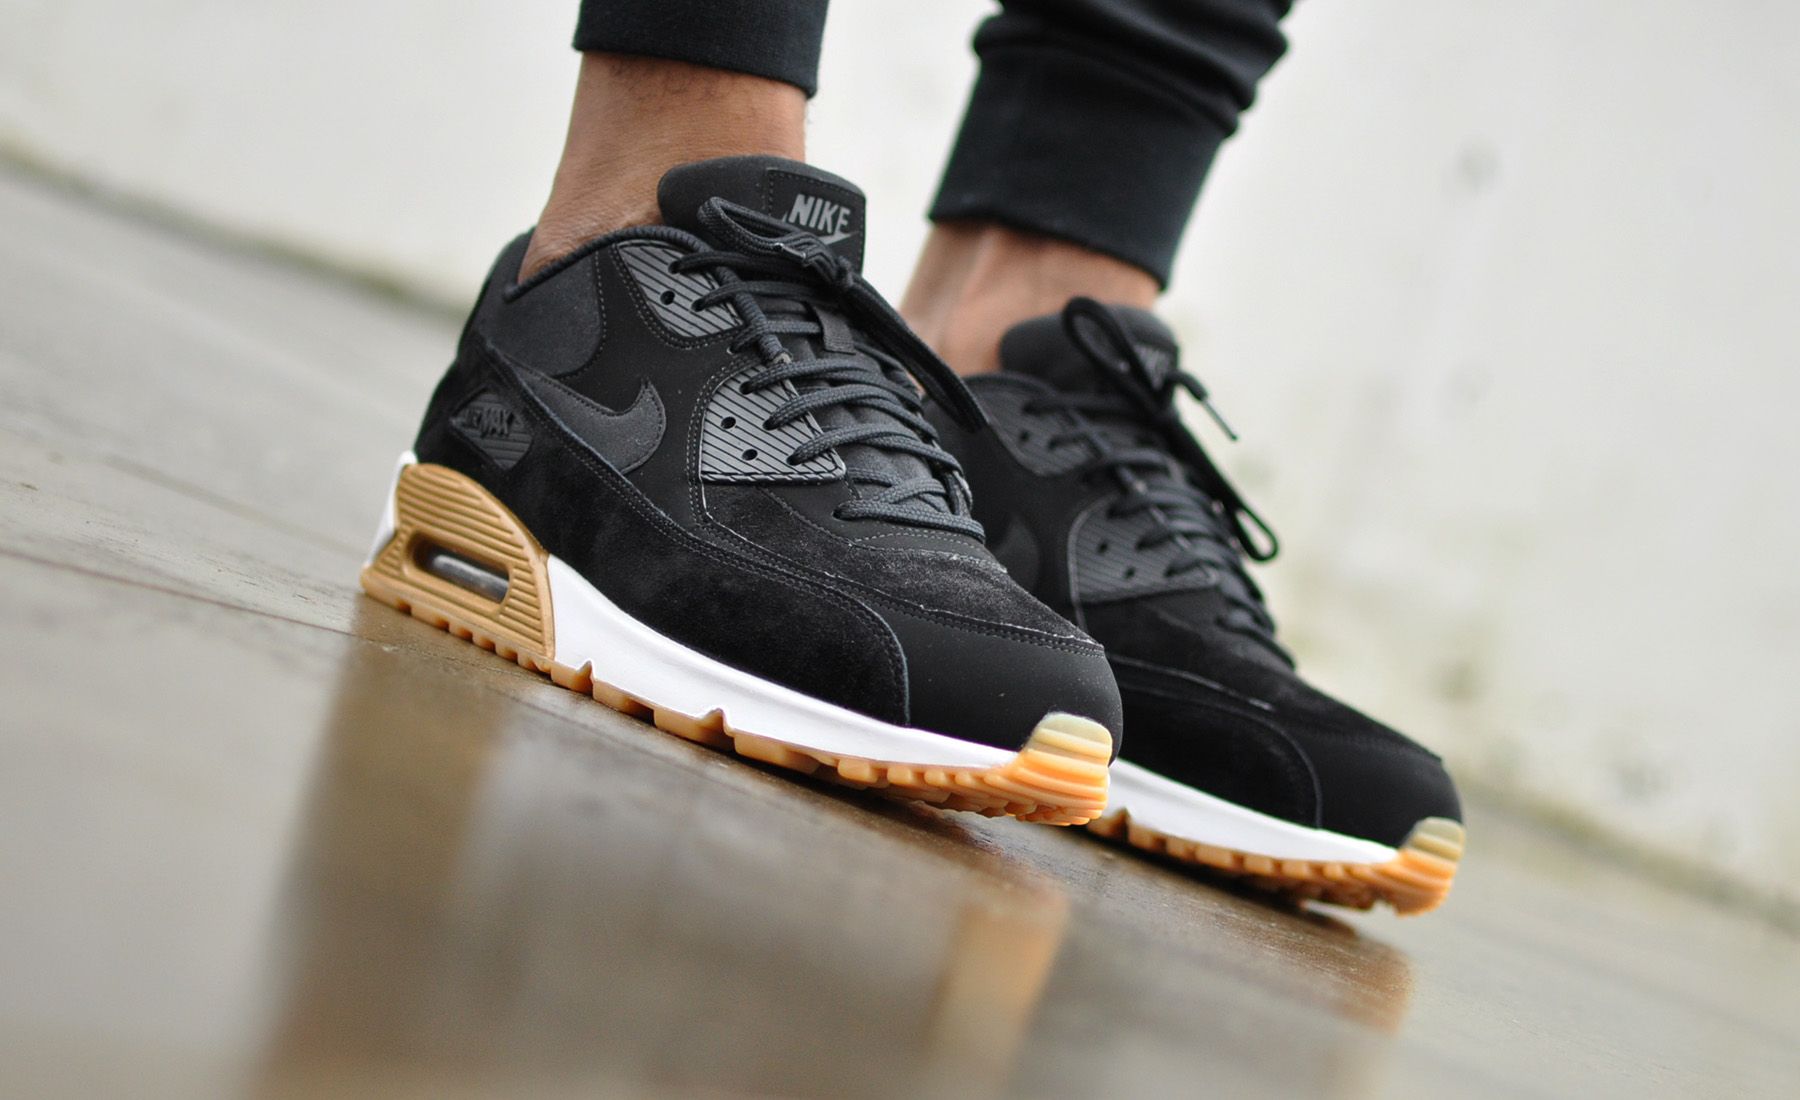 9649c269159 Nike Air Max 90 SE 881105-003 - Sneakers Blog